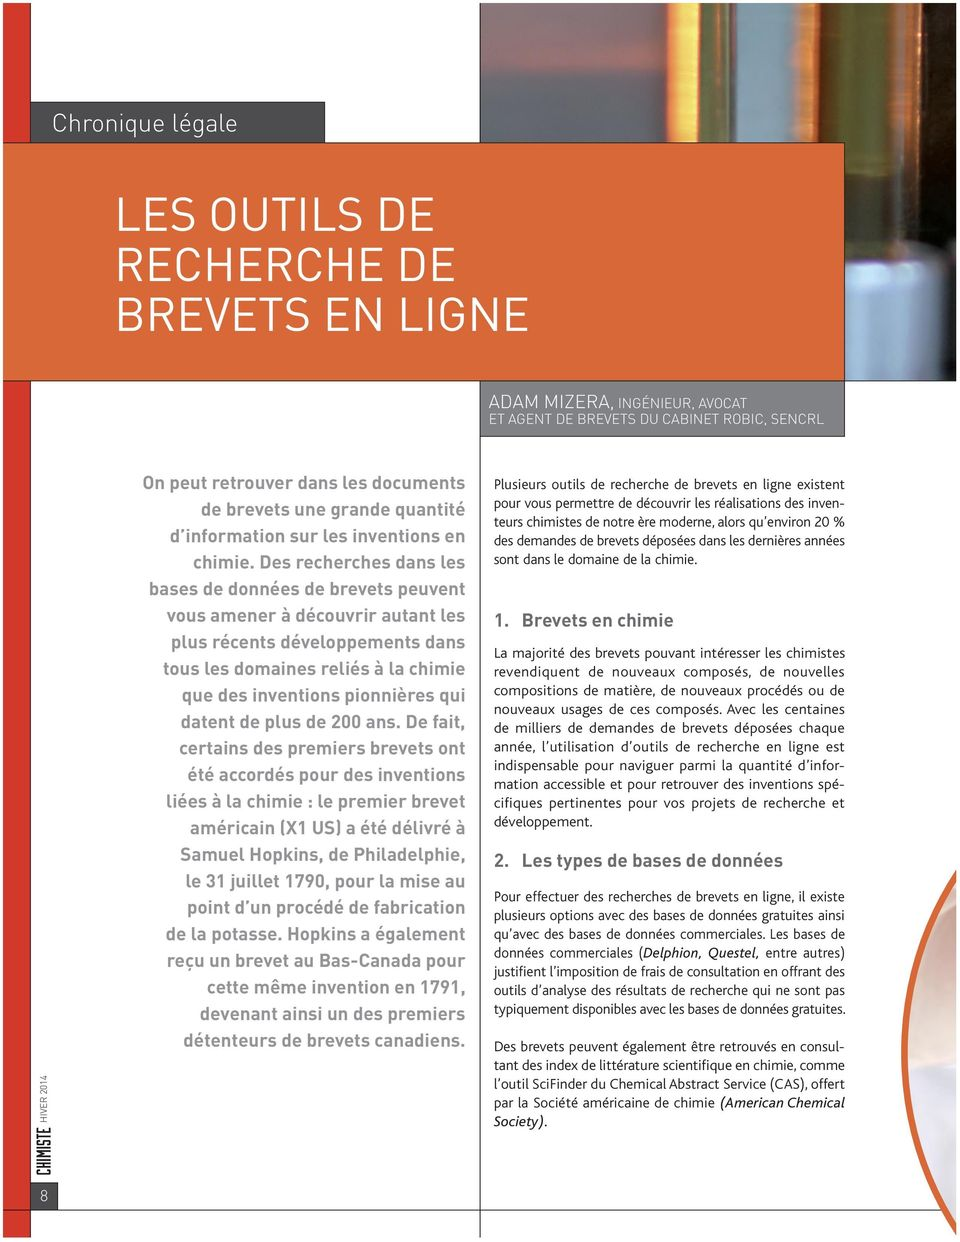 brevets en Ligne GUy COLLiN, Ph. D.